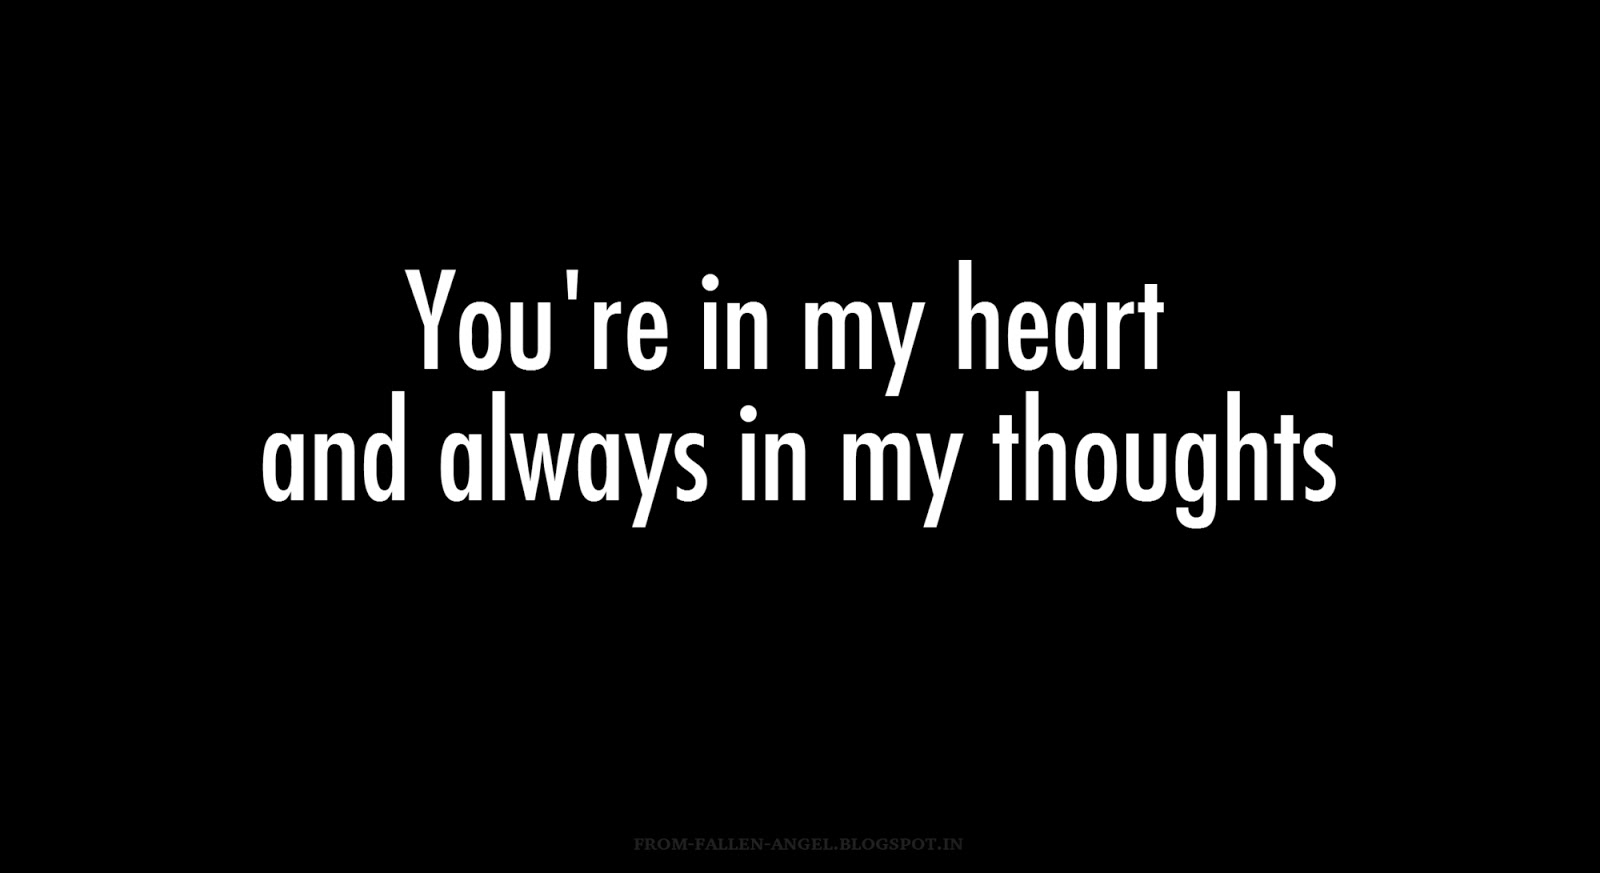 You're in my heart and always in my thoughts